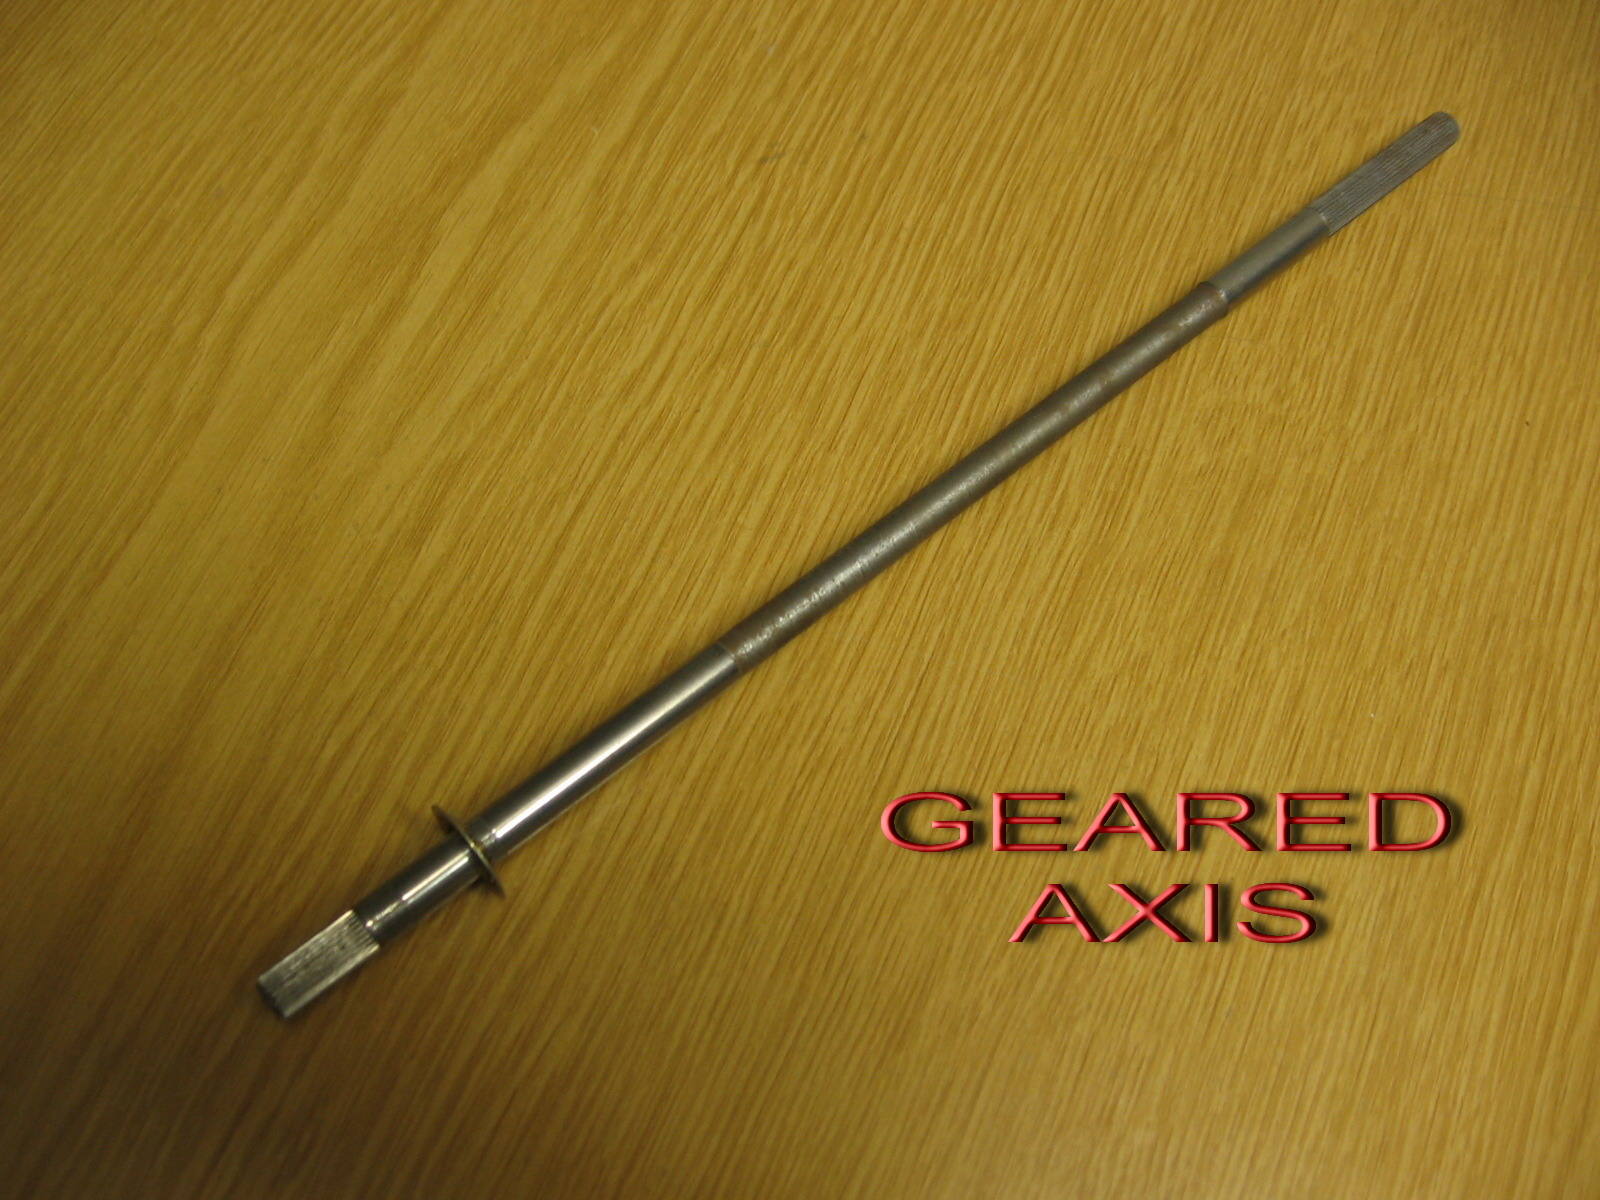 Geared axis